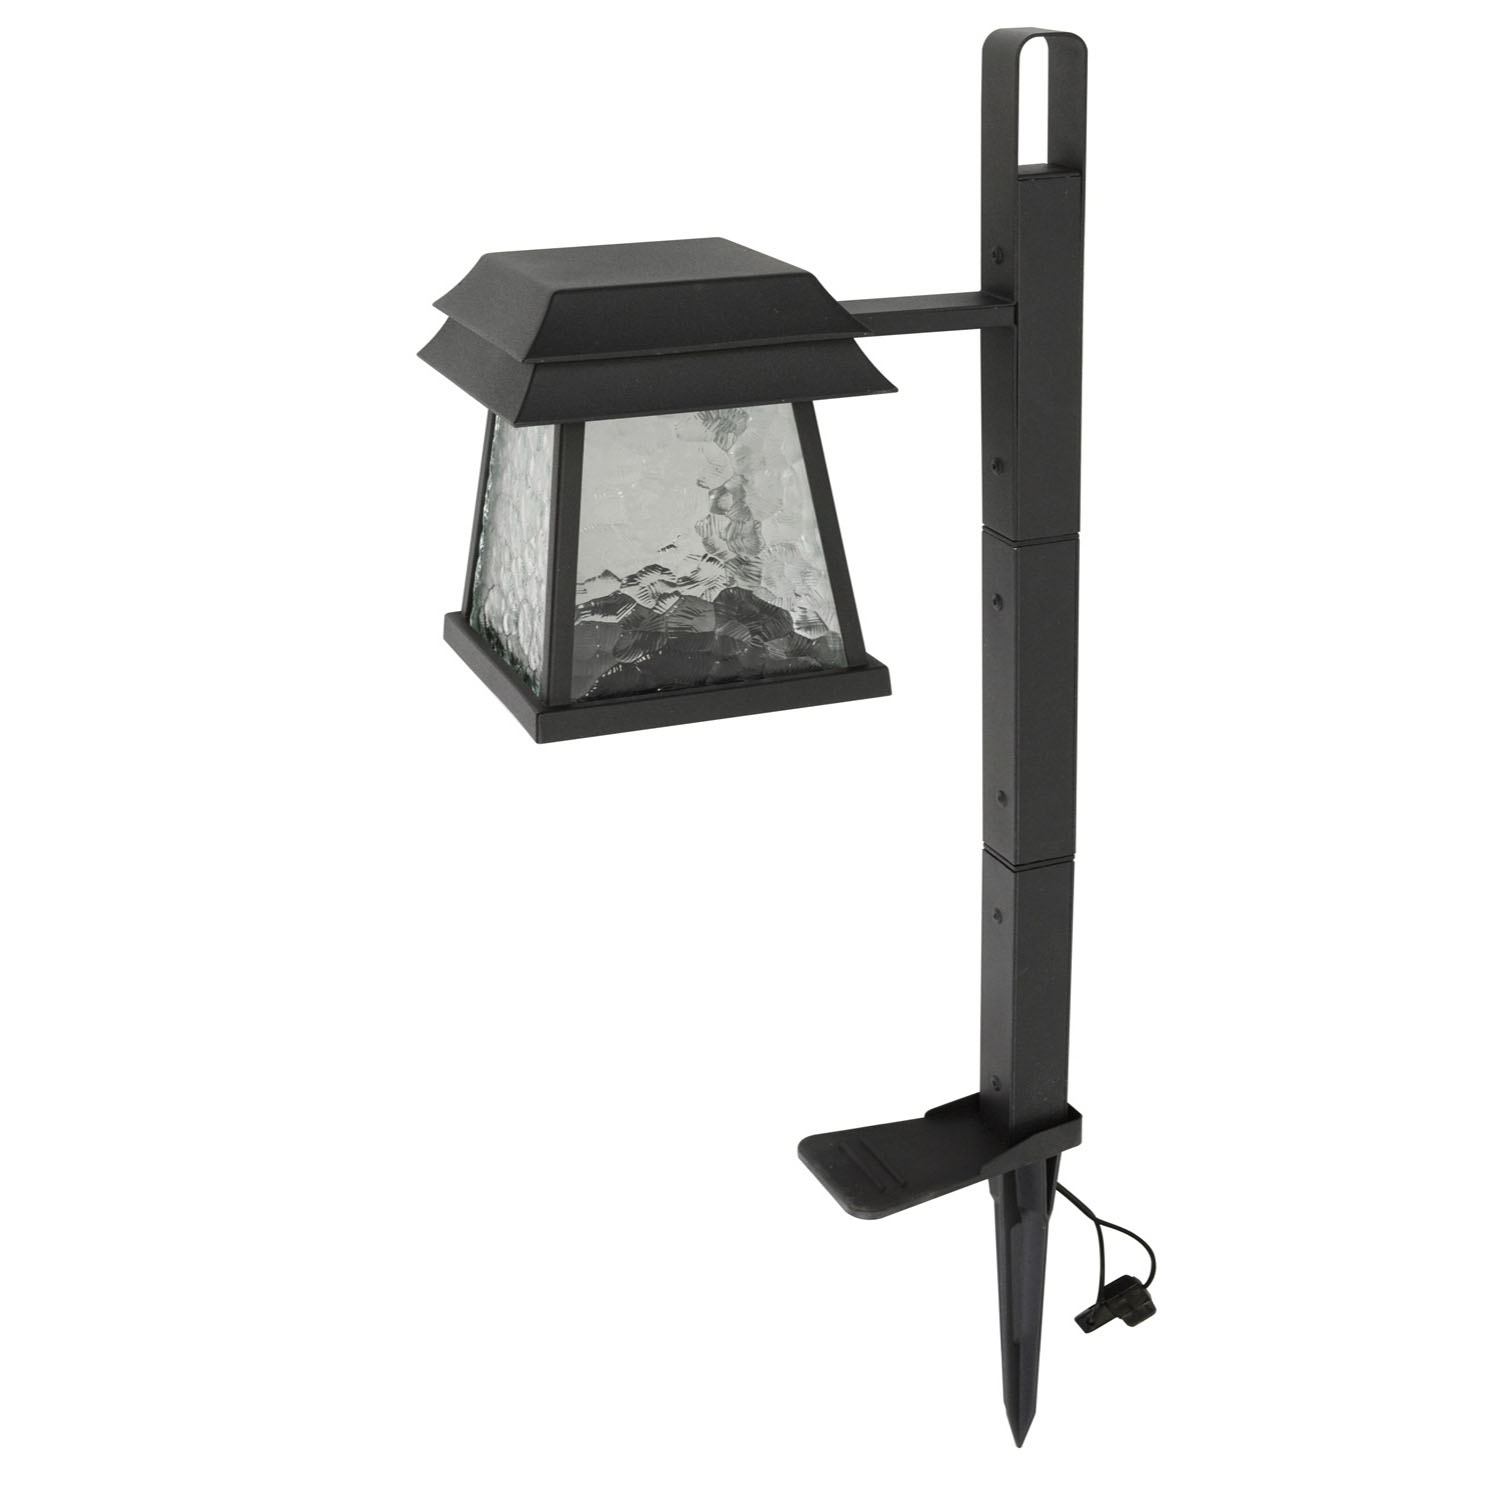 collection black low voltage led pathway stake light lamp ebay. Black Bedroom Furniture Sets. Home Design Ideas